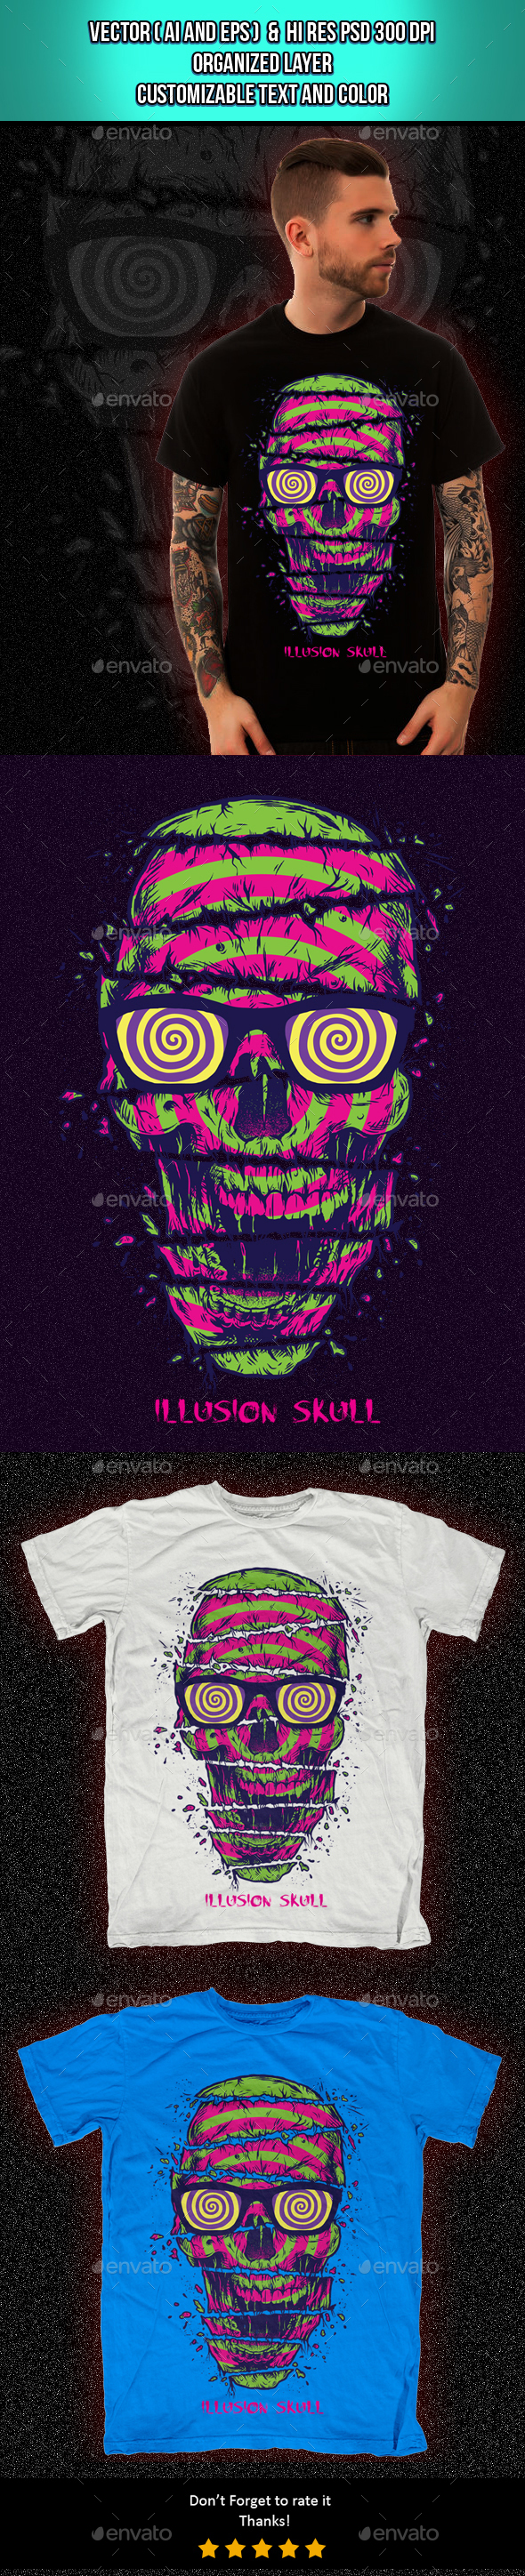 Illusion Skull - Funny Designs